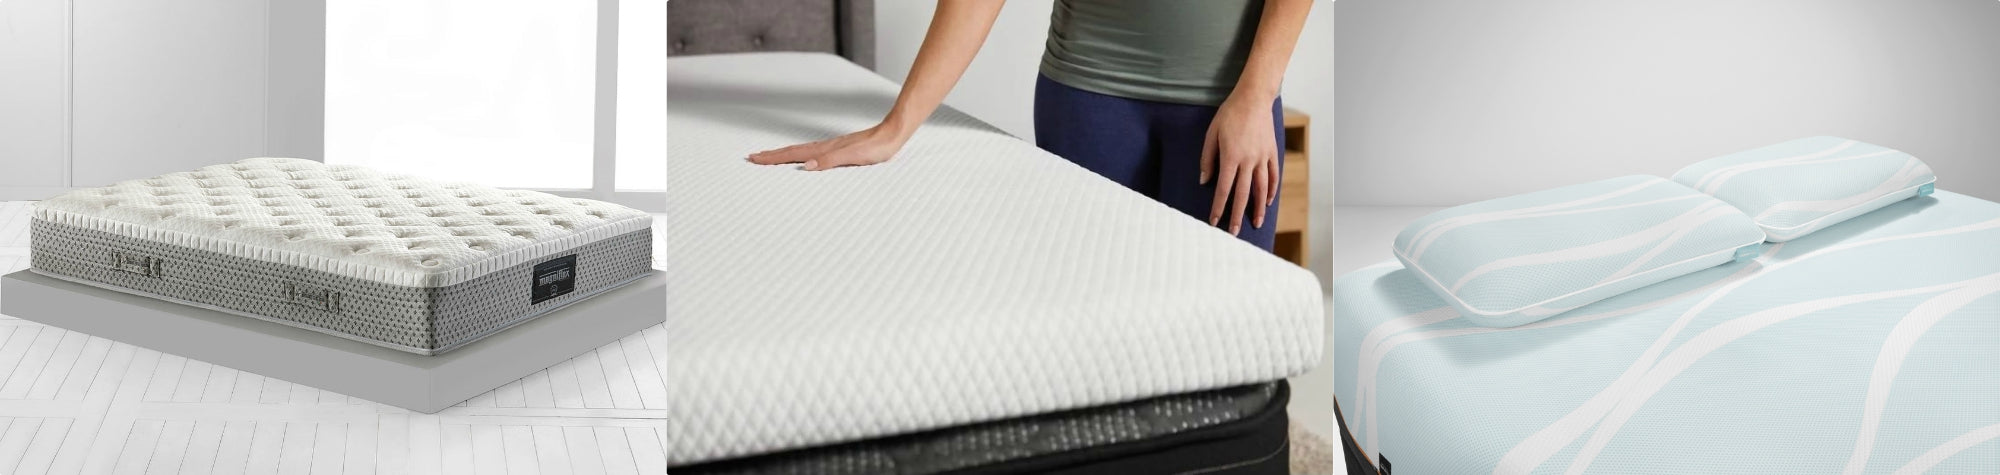 Mattress Options For Your RV